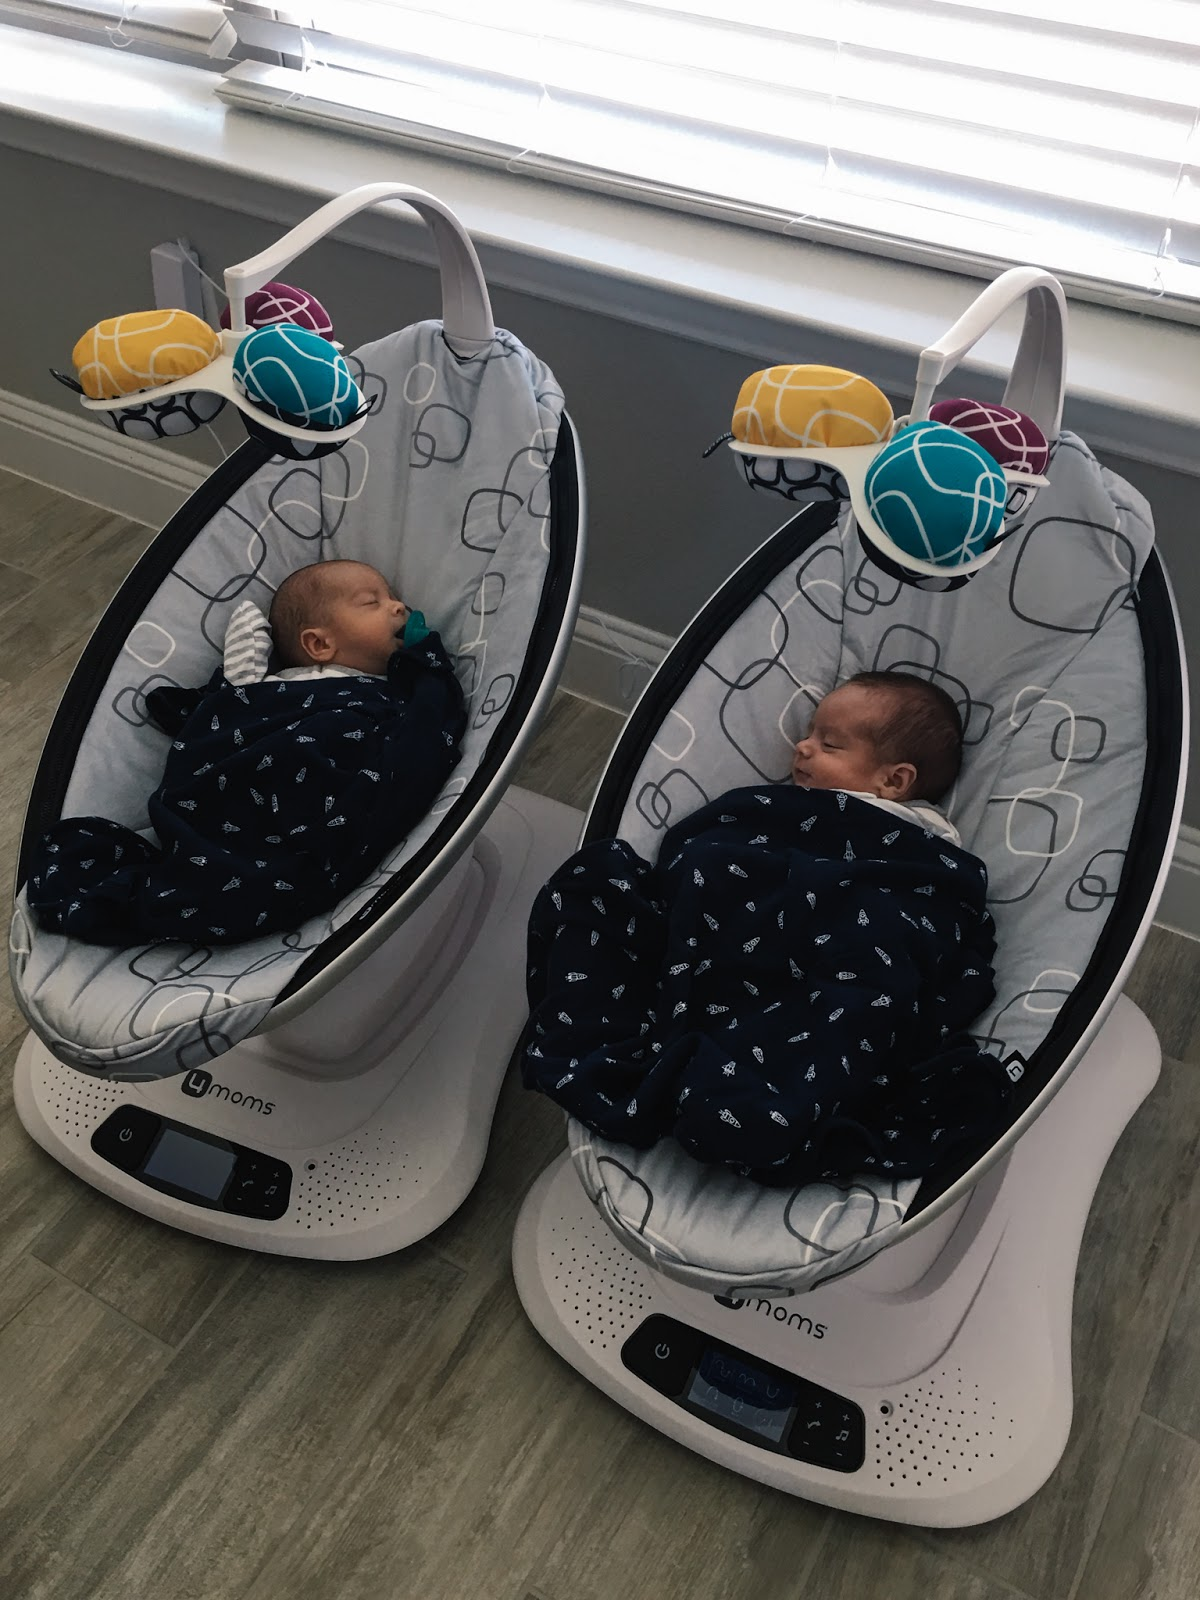 4 Moms mamaroo and twins